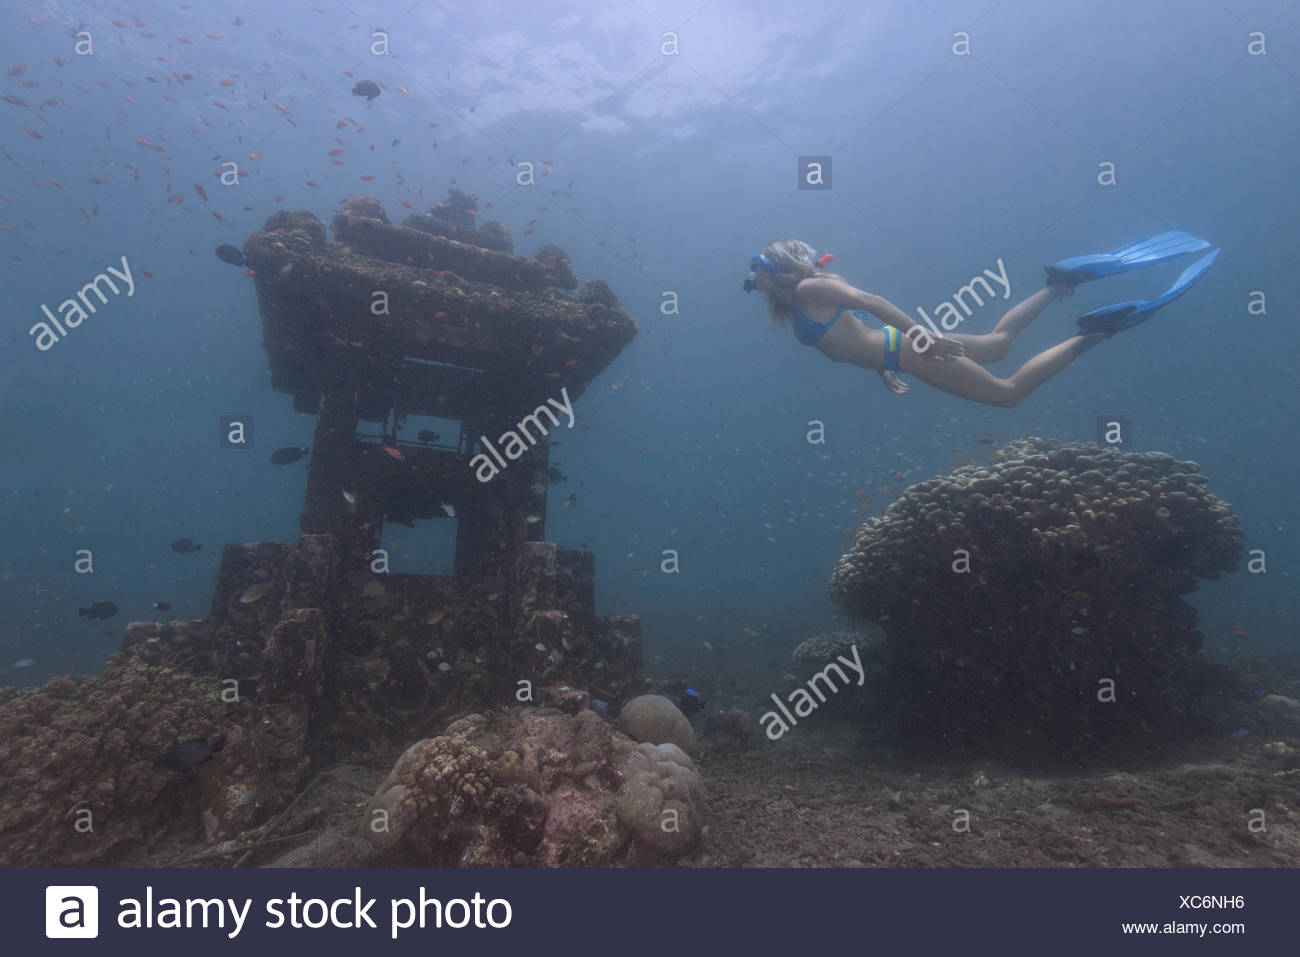 Woman snorkeling underwater by a sunken temple, Bali, Indonesia - Stock Image